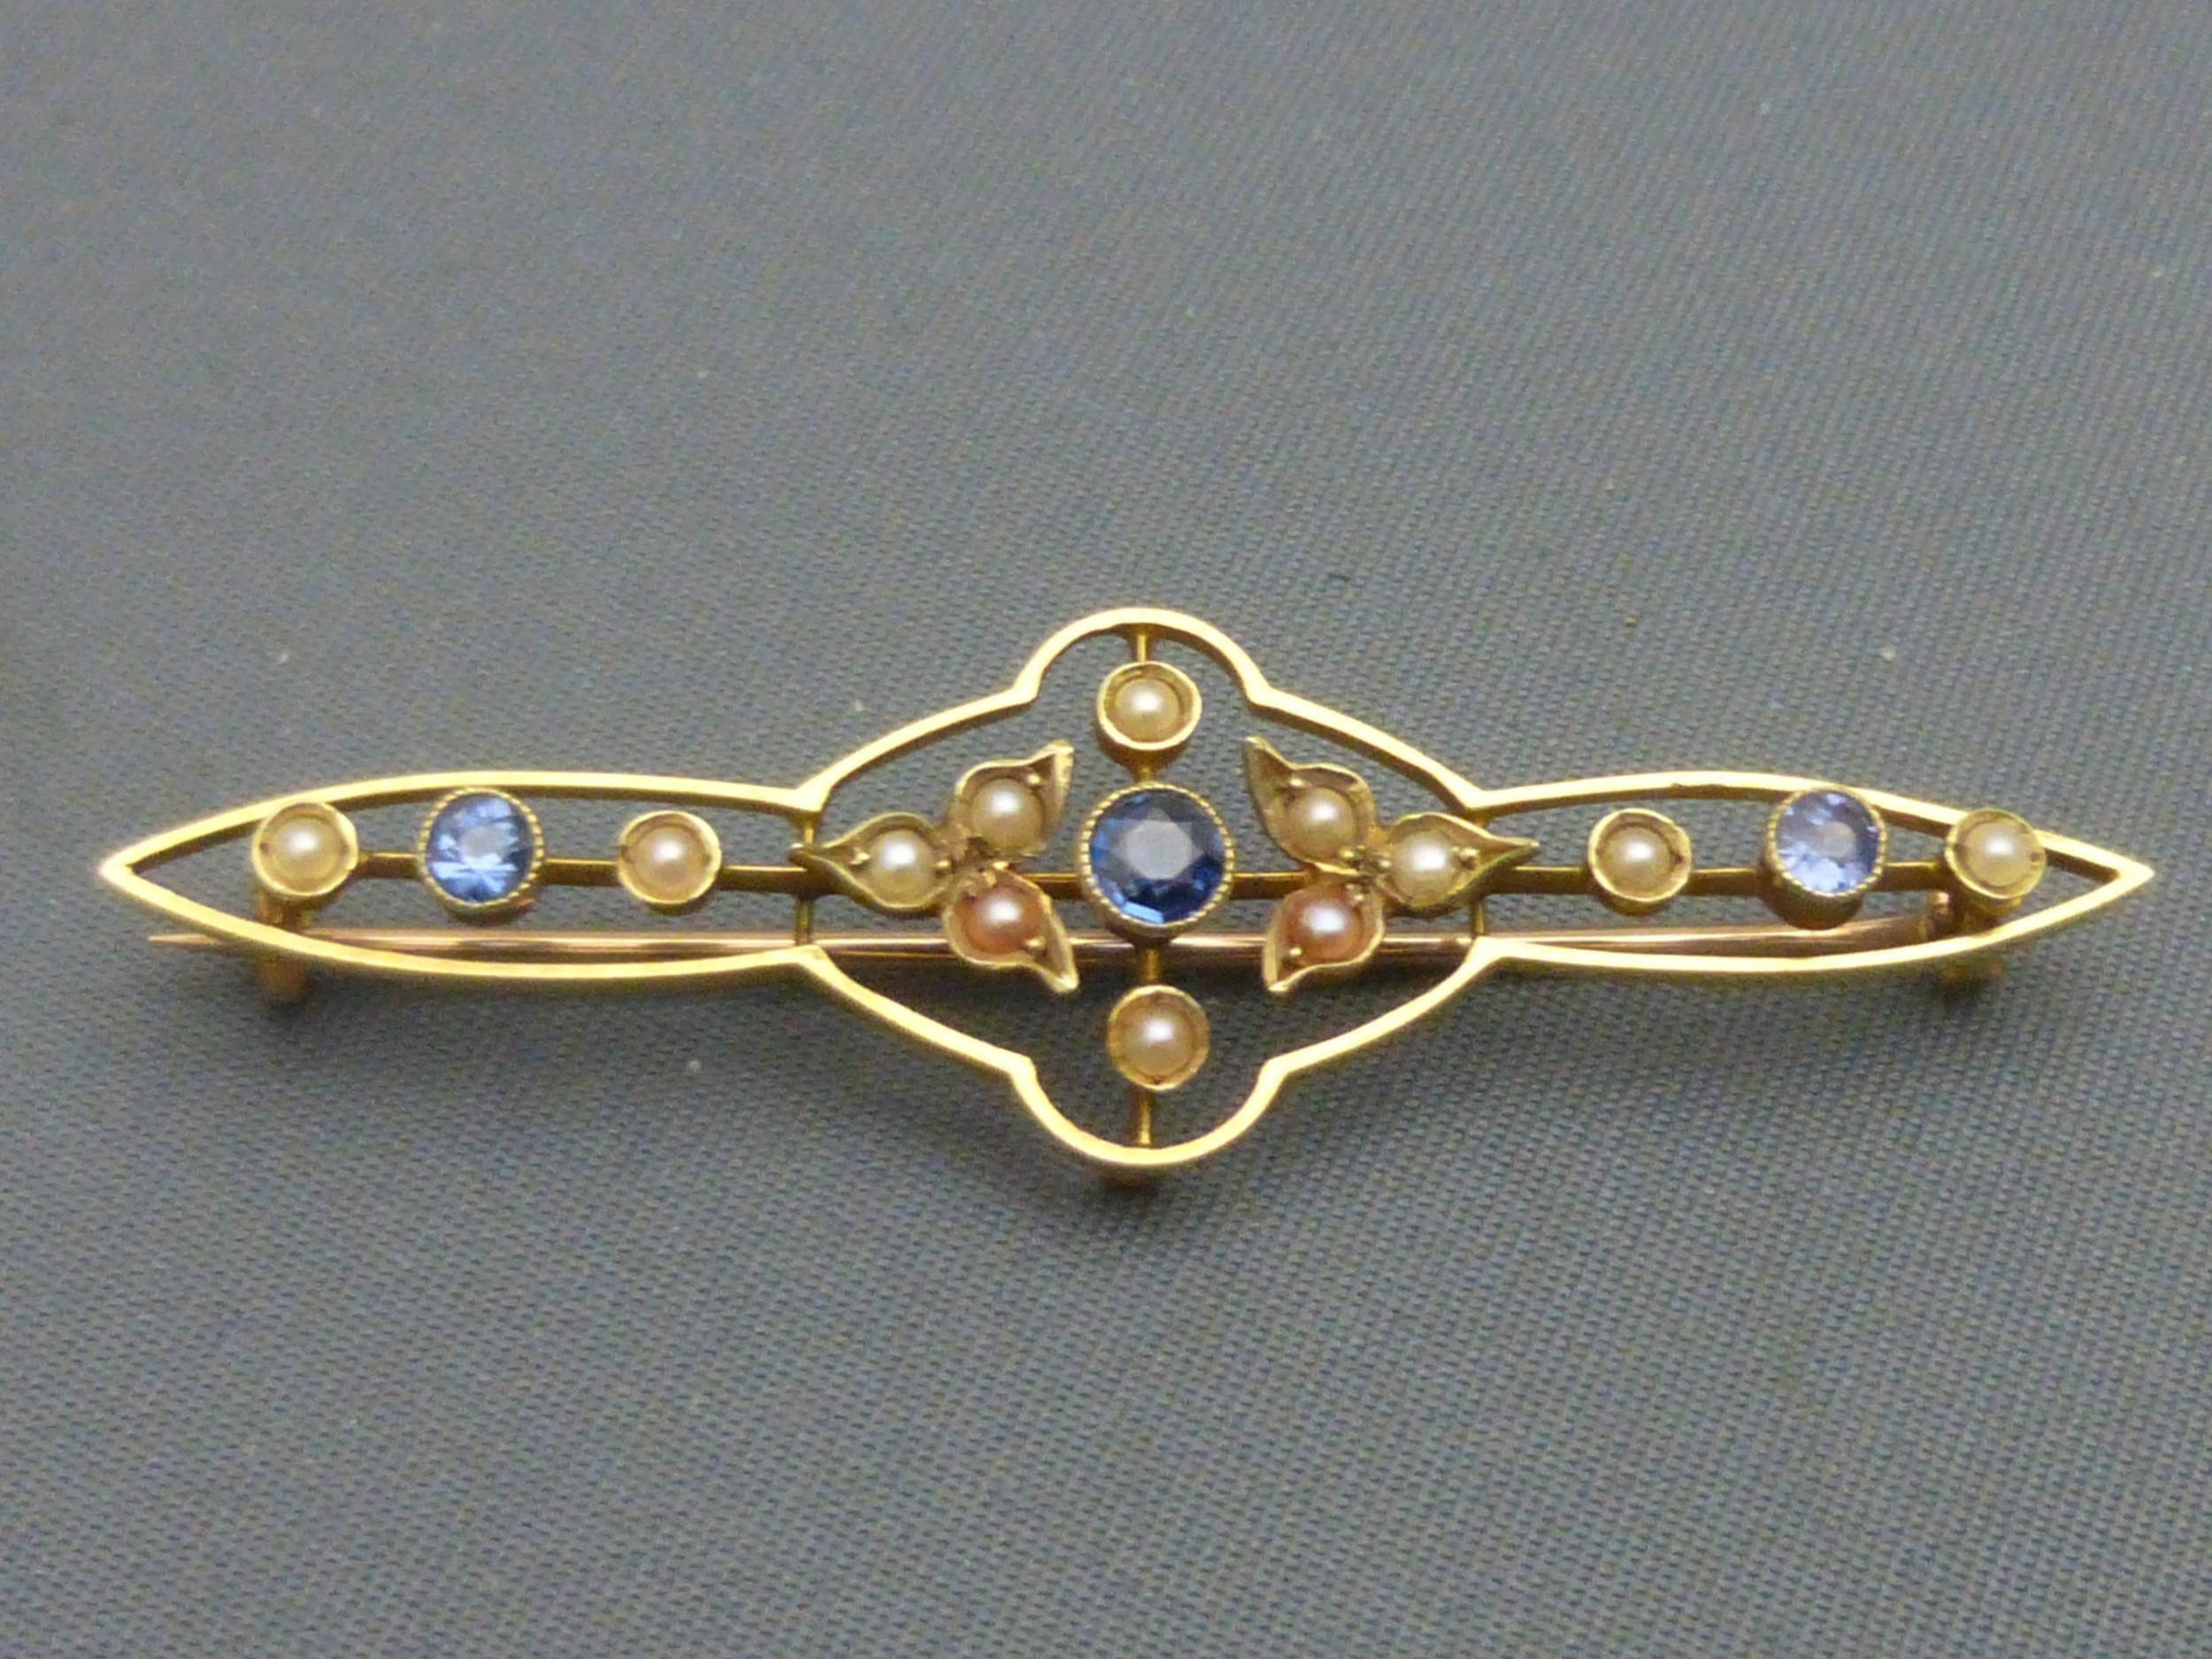 edwardian 15ct goldsapphire and pearl set brooch